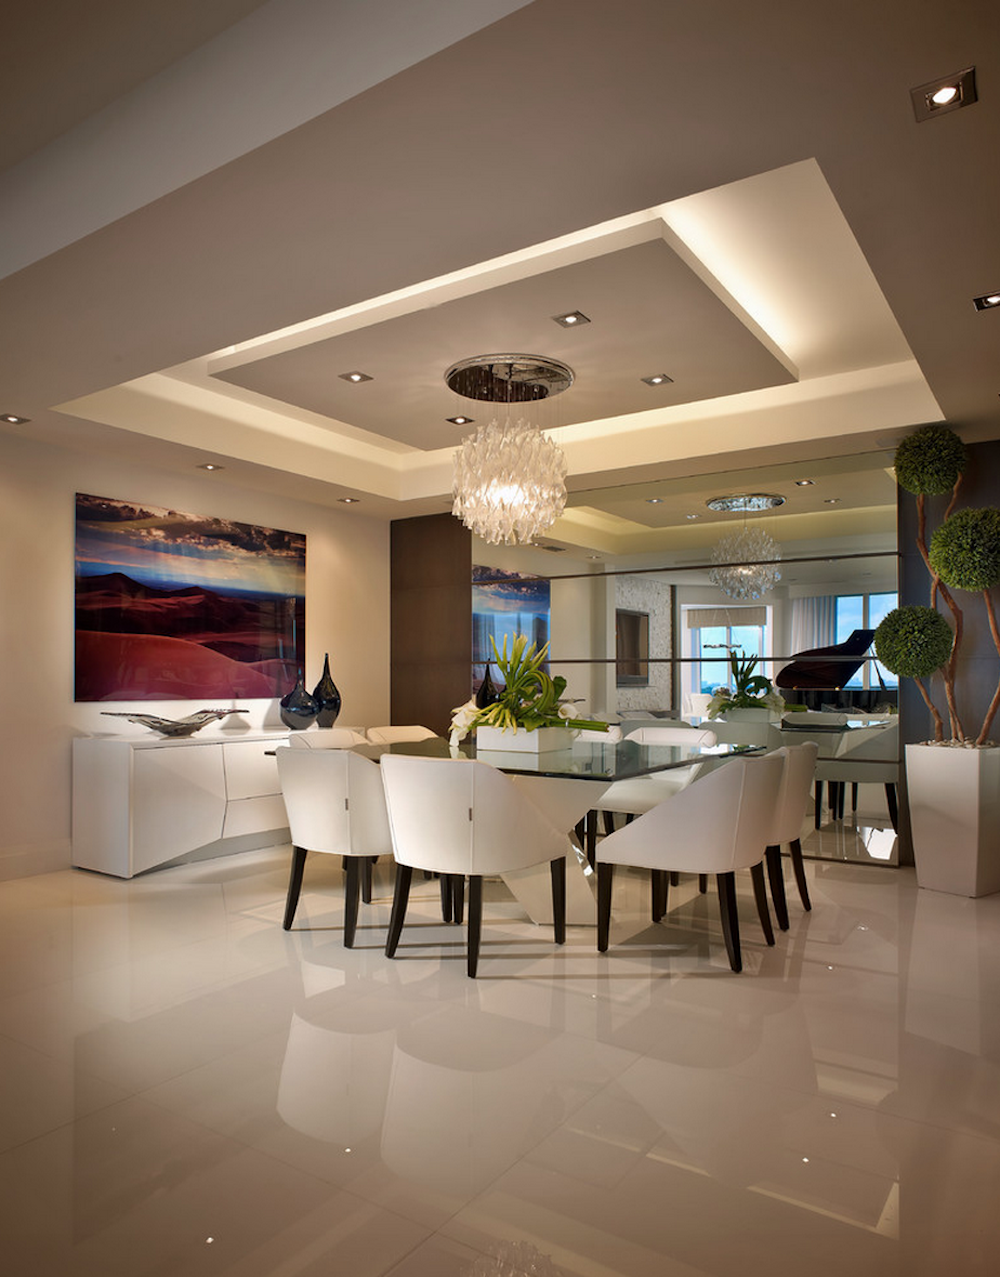 Modern ceiling designs for dining room - Stunning Home Interiors Sala De Jantar Dining Room Salle Manger Decora O